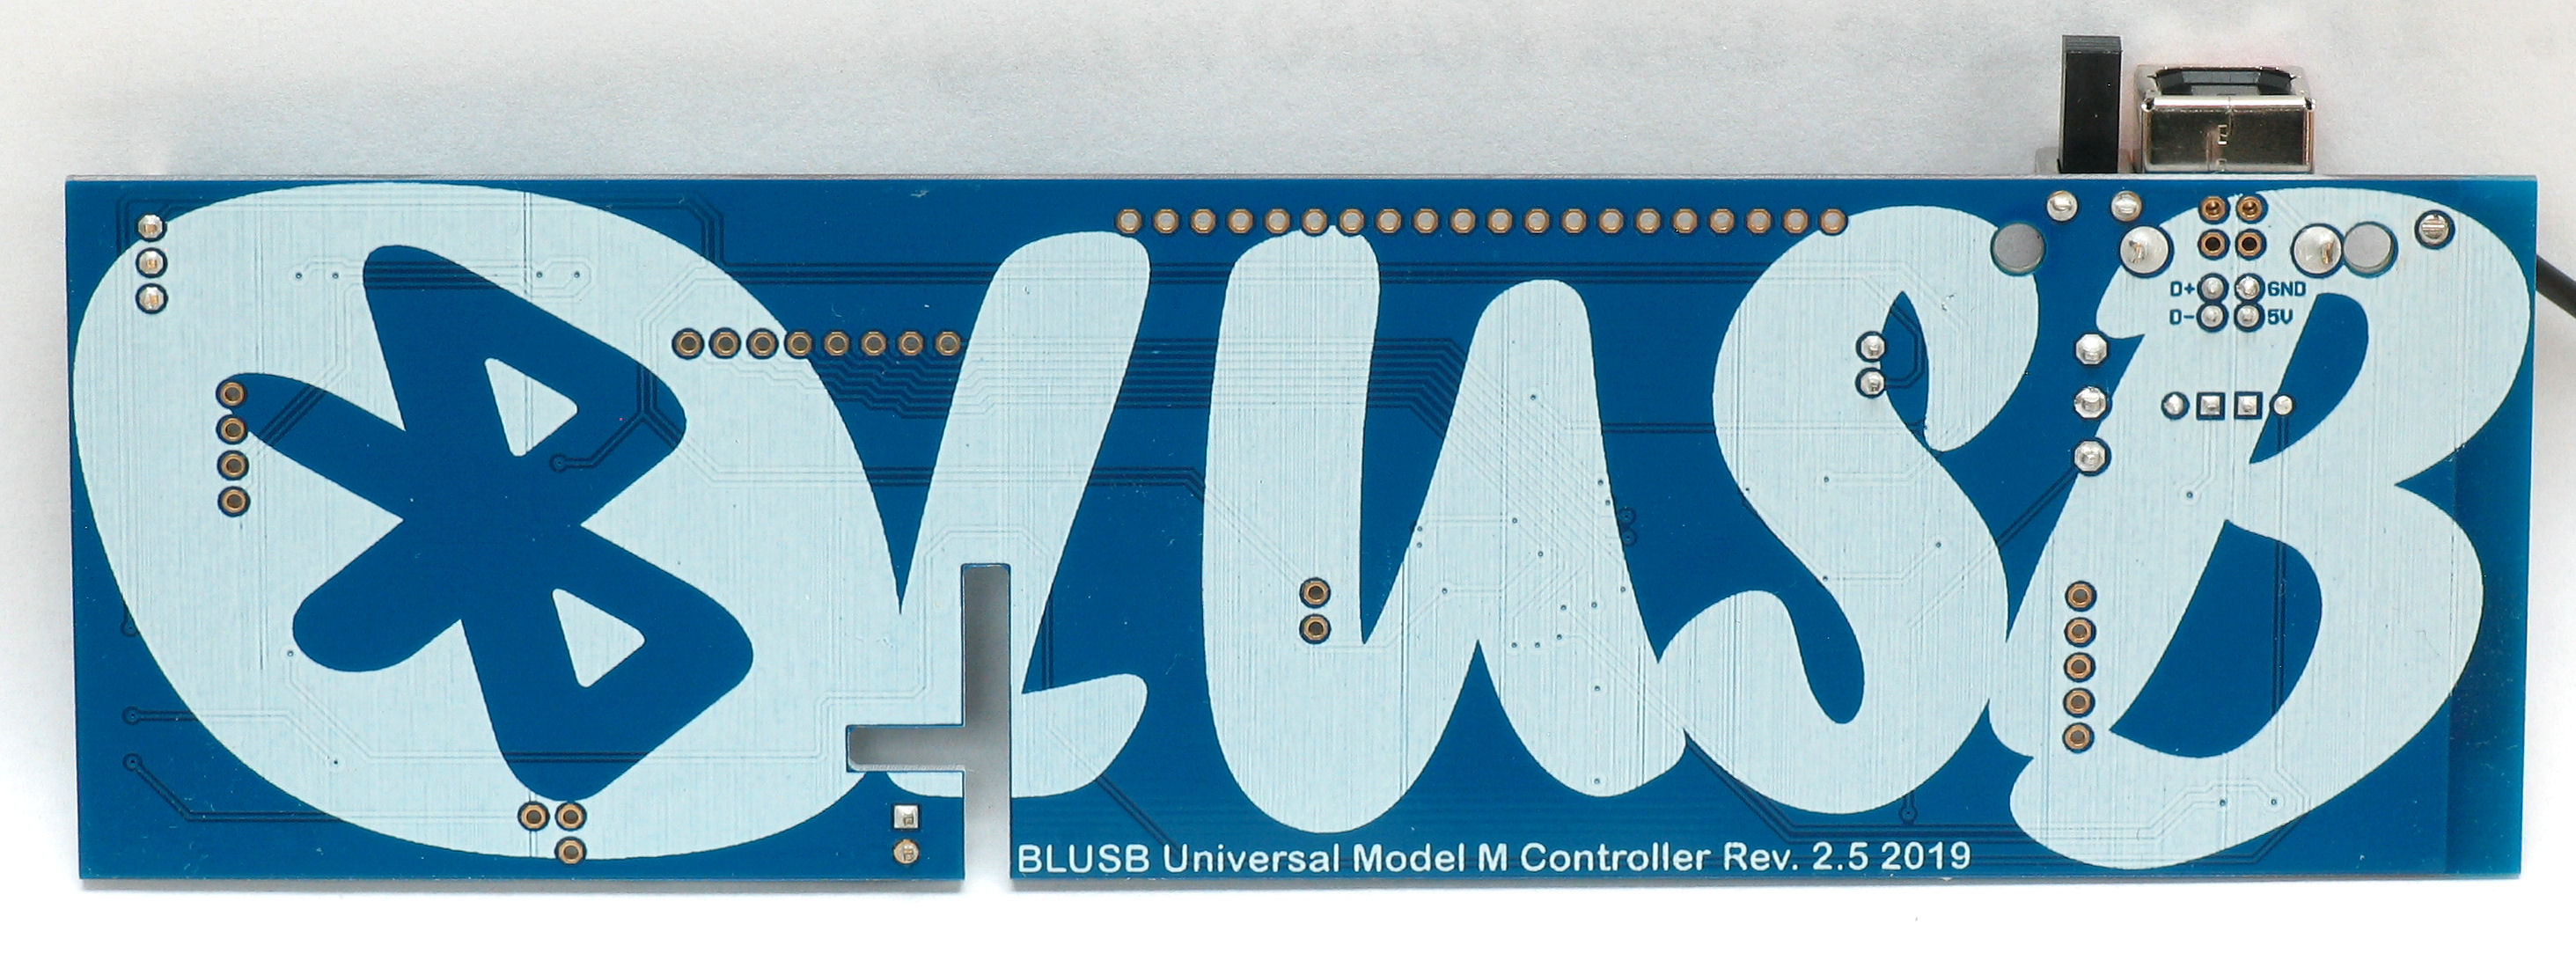 blusb_controller_main_pcb_rev_2_5_bottom.jpg